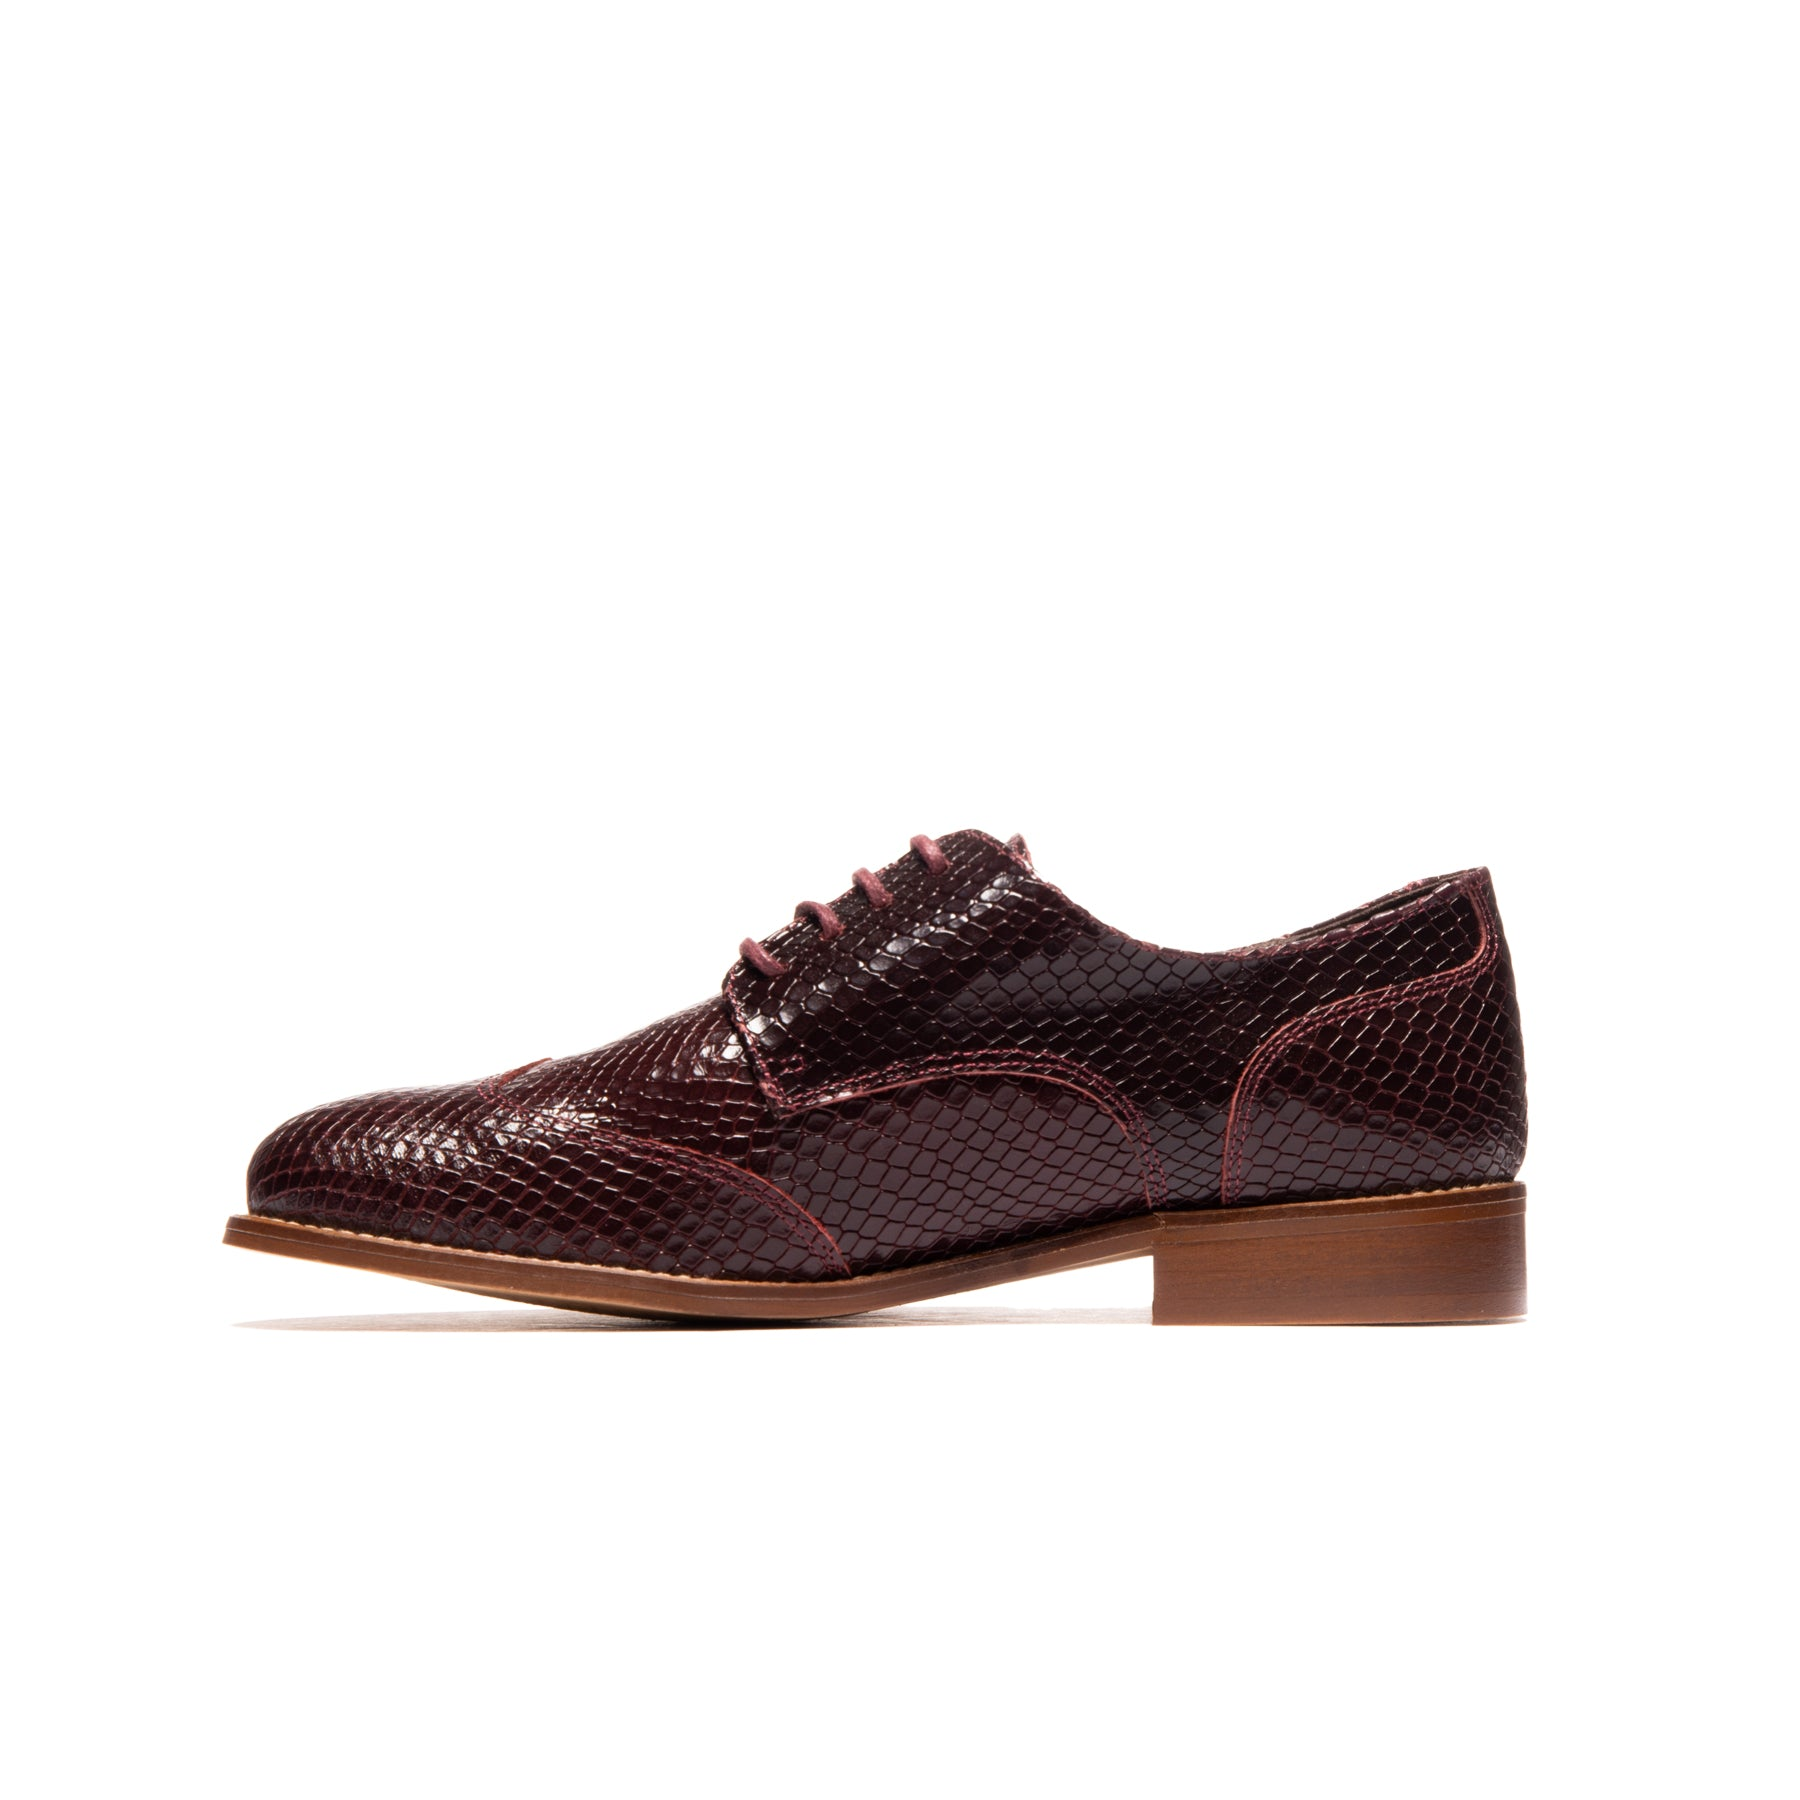 Marti Bordeaux Snake Leather